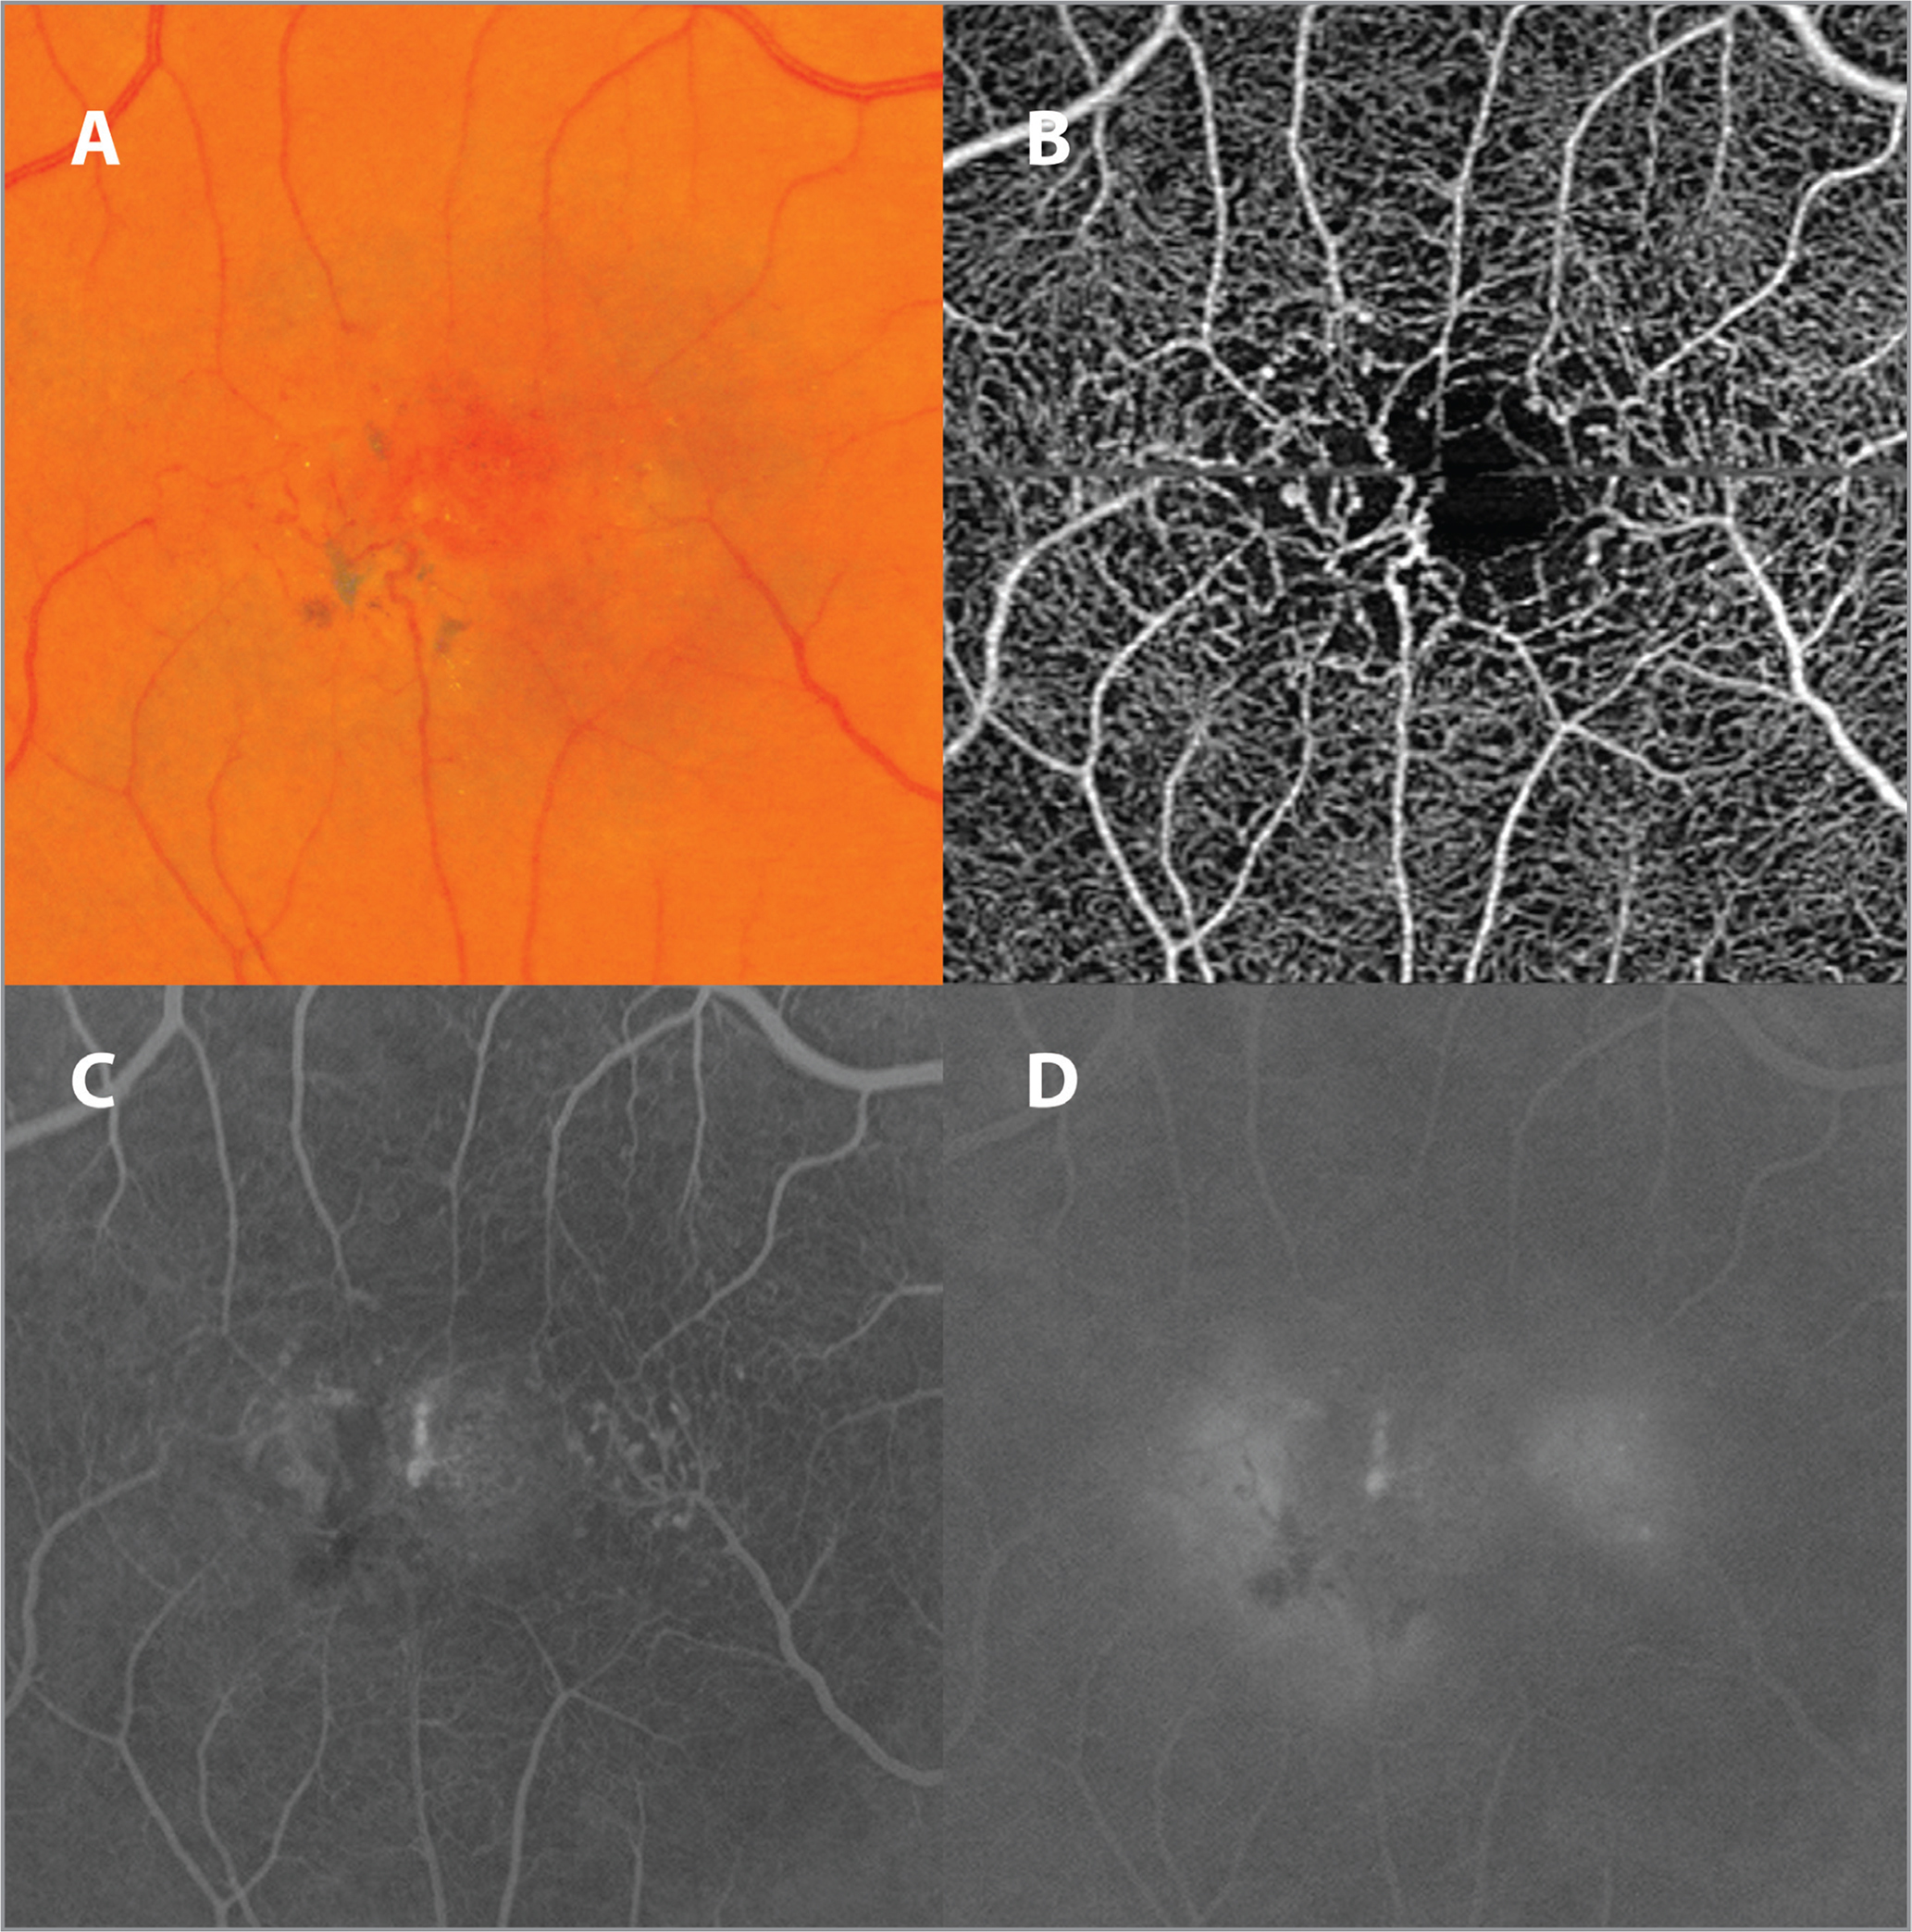 Central macula of an eye with idiopathic juxtafoveal retinal telangiectasia type 2 (MacTel). (A) A color fundus photograph shows telangiectatic parafoveal vessels, right-angle venules, subtle crystal deposition, and patches of retinal pigment epithelium hyperplasia. (B) A corresponding optical coherence tomography angiography image shows focal dilation and alterations in foveal capillaries most prominent temporally. (C) An early frame of the fluorescein angiogram shows capillary telangiectasia, with blocking from areas of intraretinal pigment. (D) A late frame of the fluorescein angiogram shows capillary leakage.